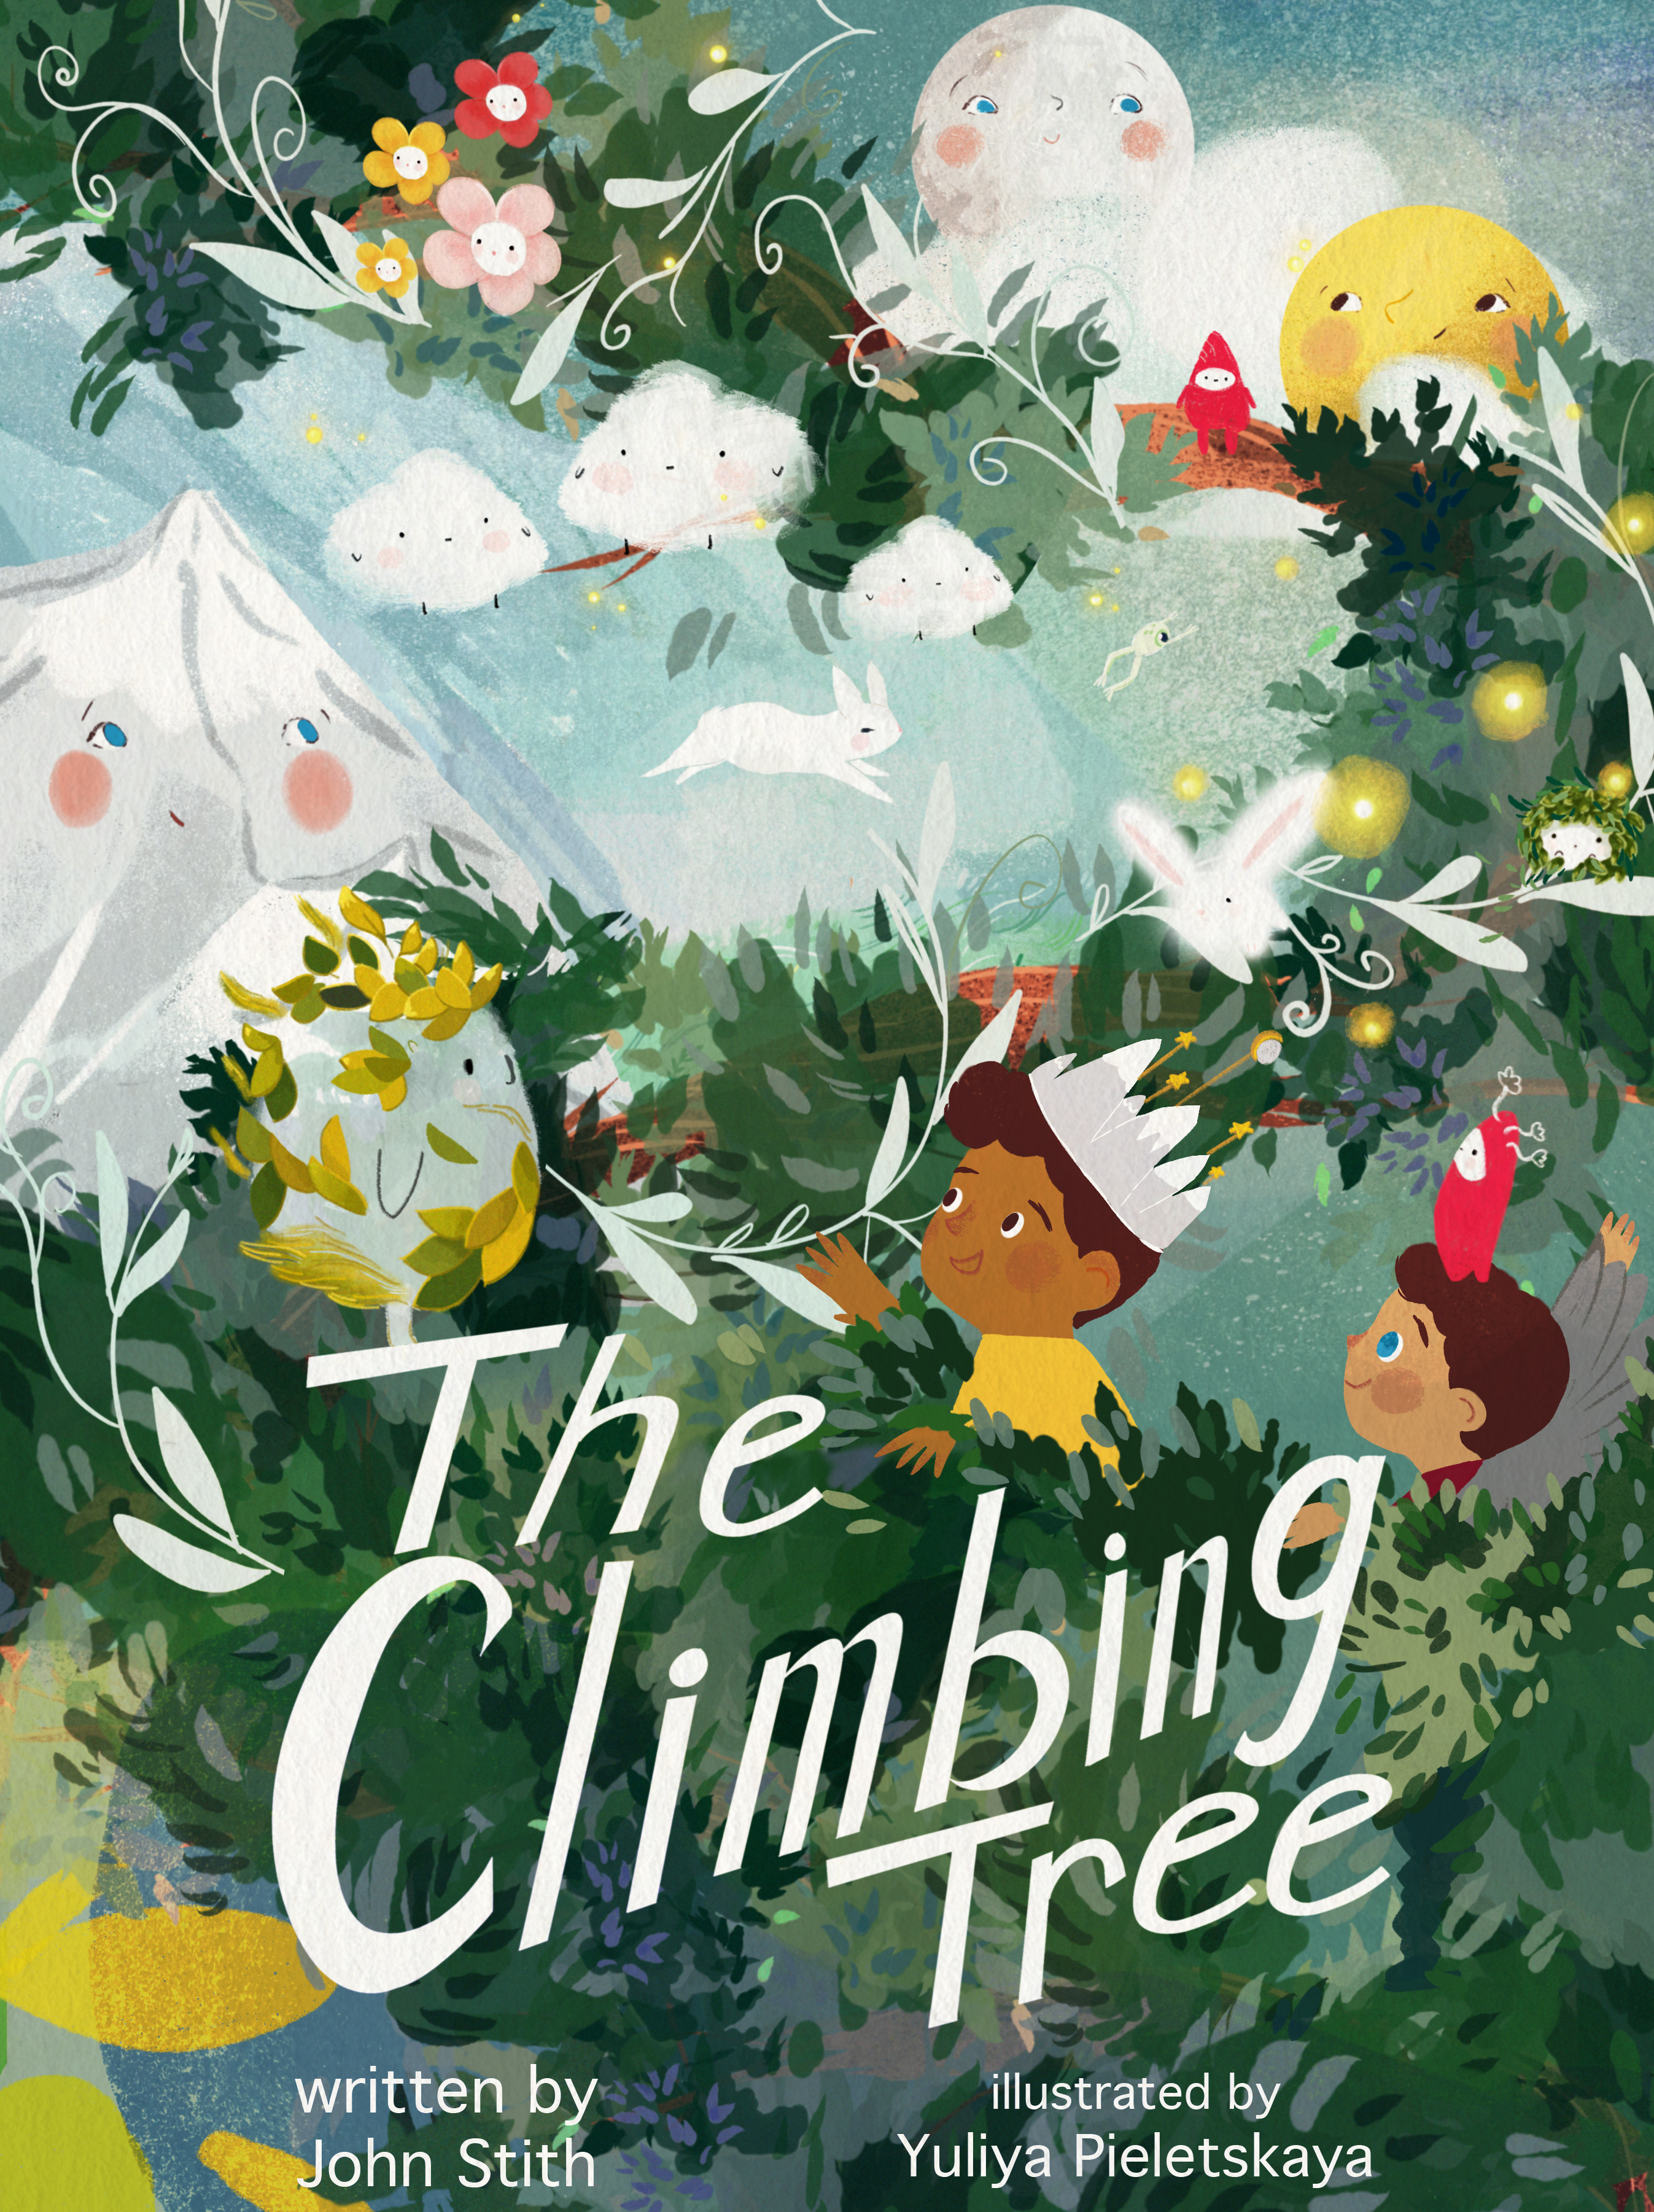 POW! Kids Books Sunday Story Time: The Climbing Tree by John Stith